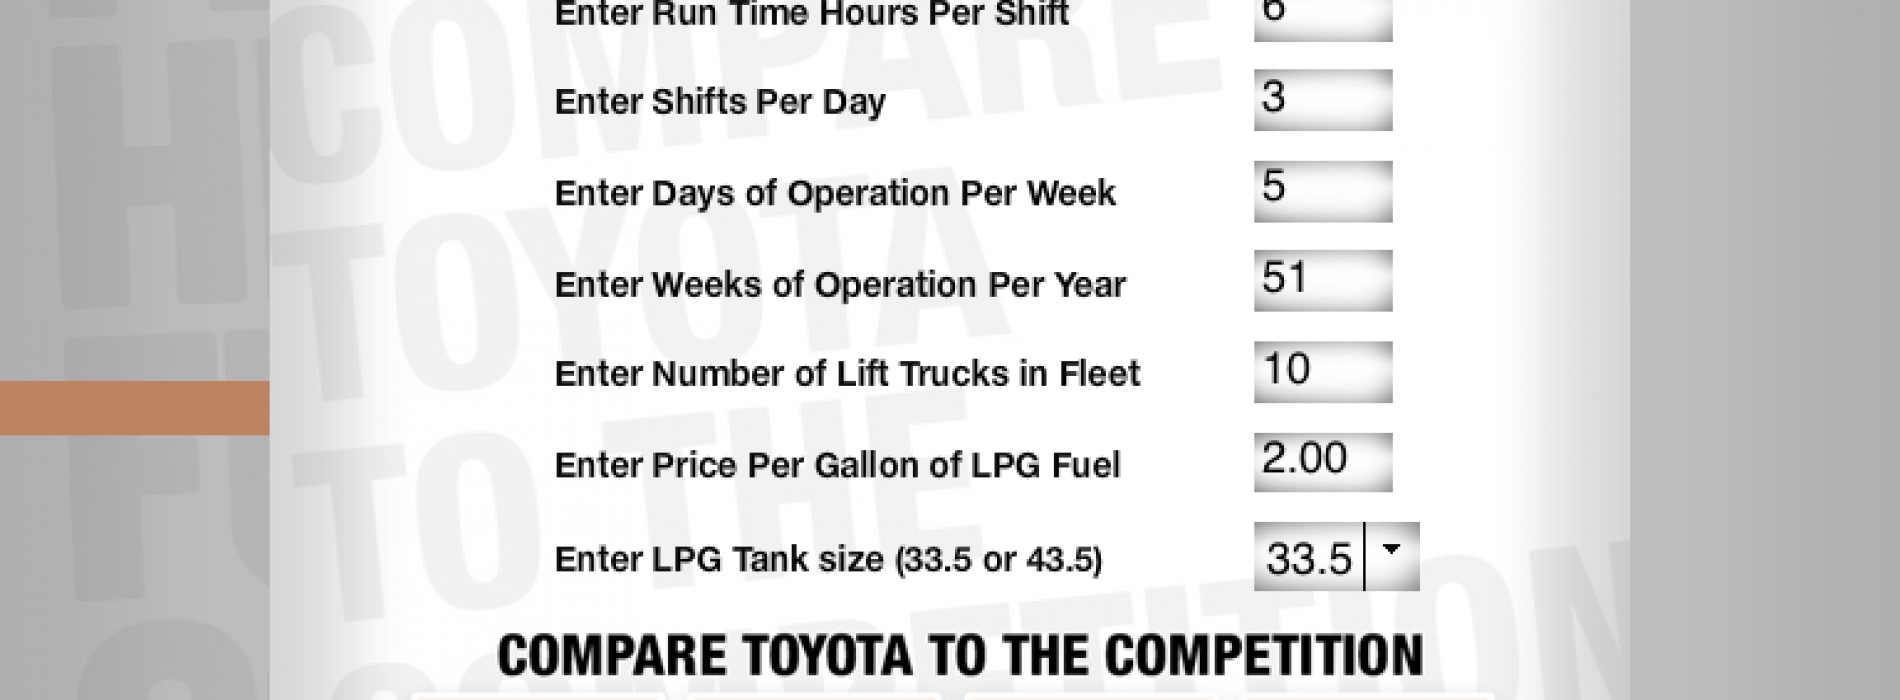 Toyota introduces fuel efficiency app for forklift fleet managers